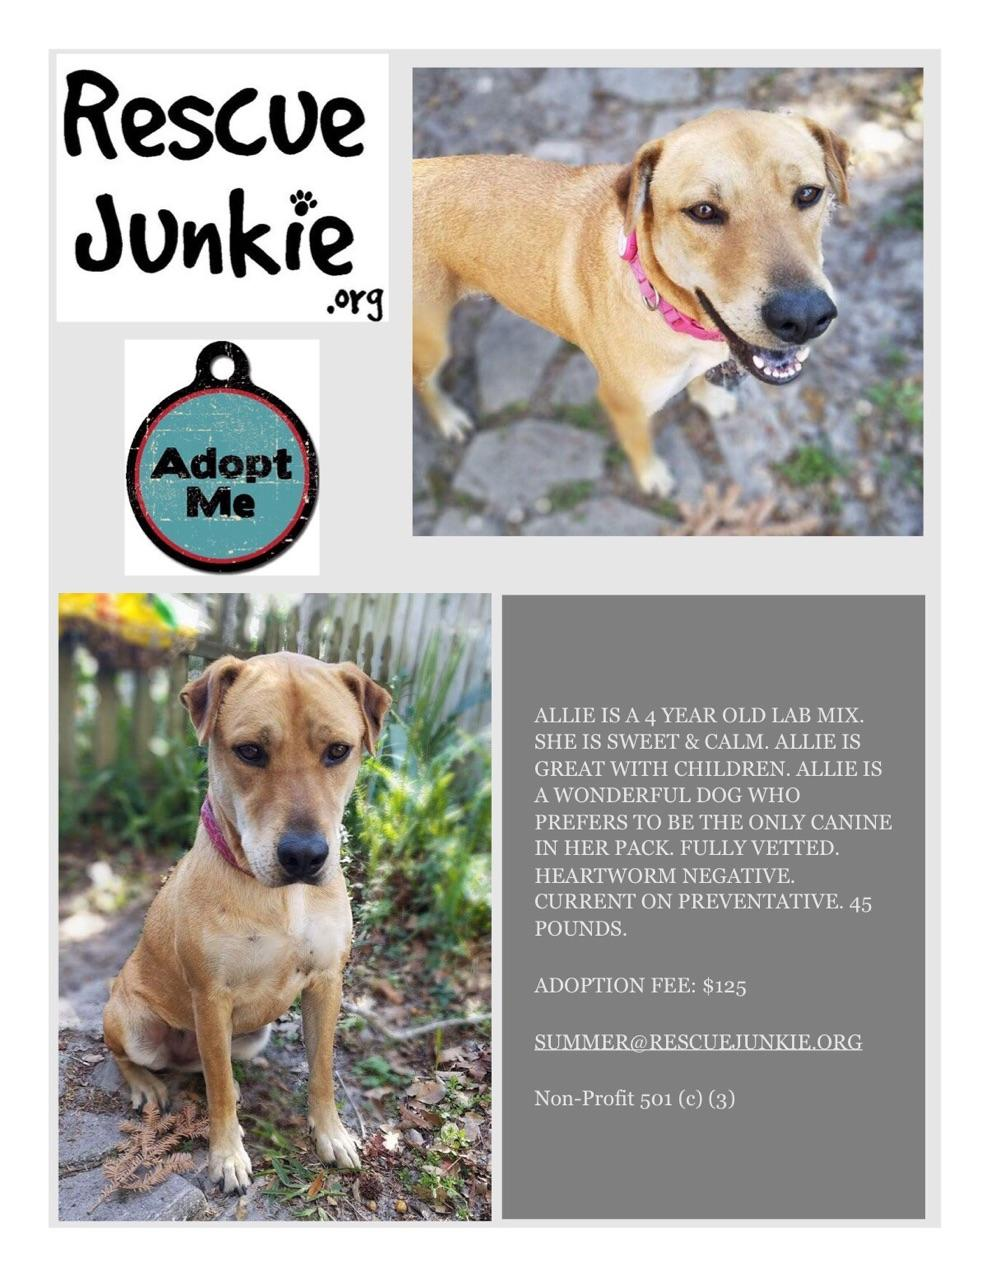 Rescue Junkie Inc Dogs up for Adoption